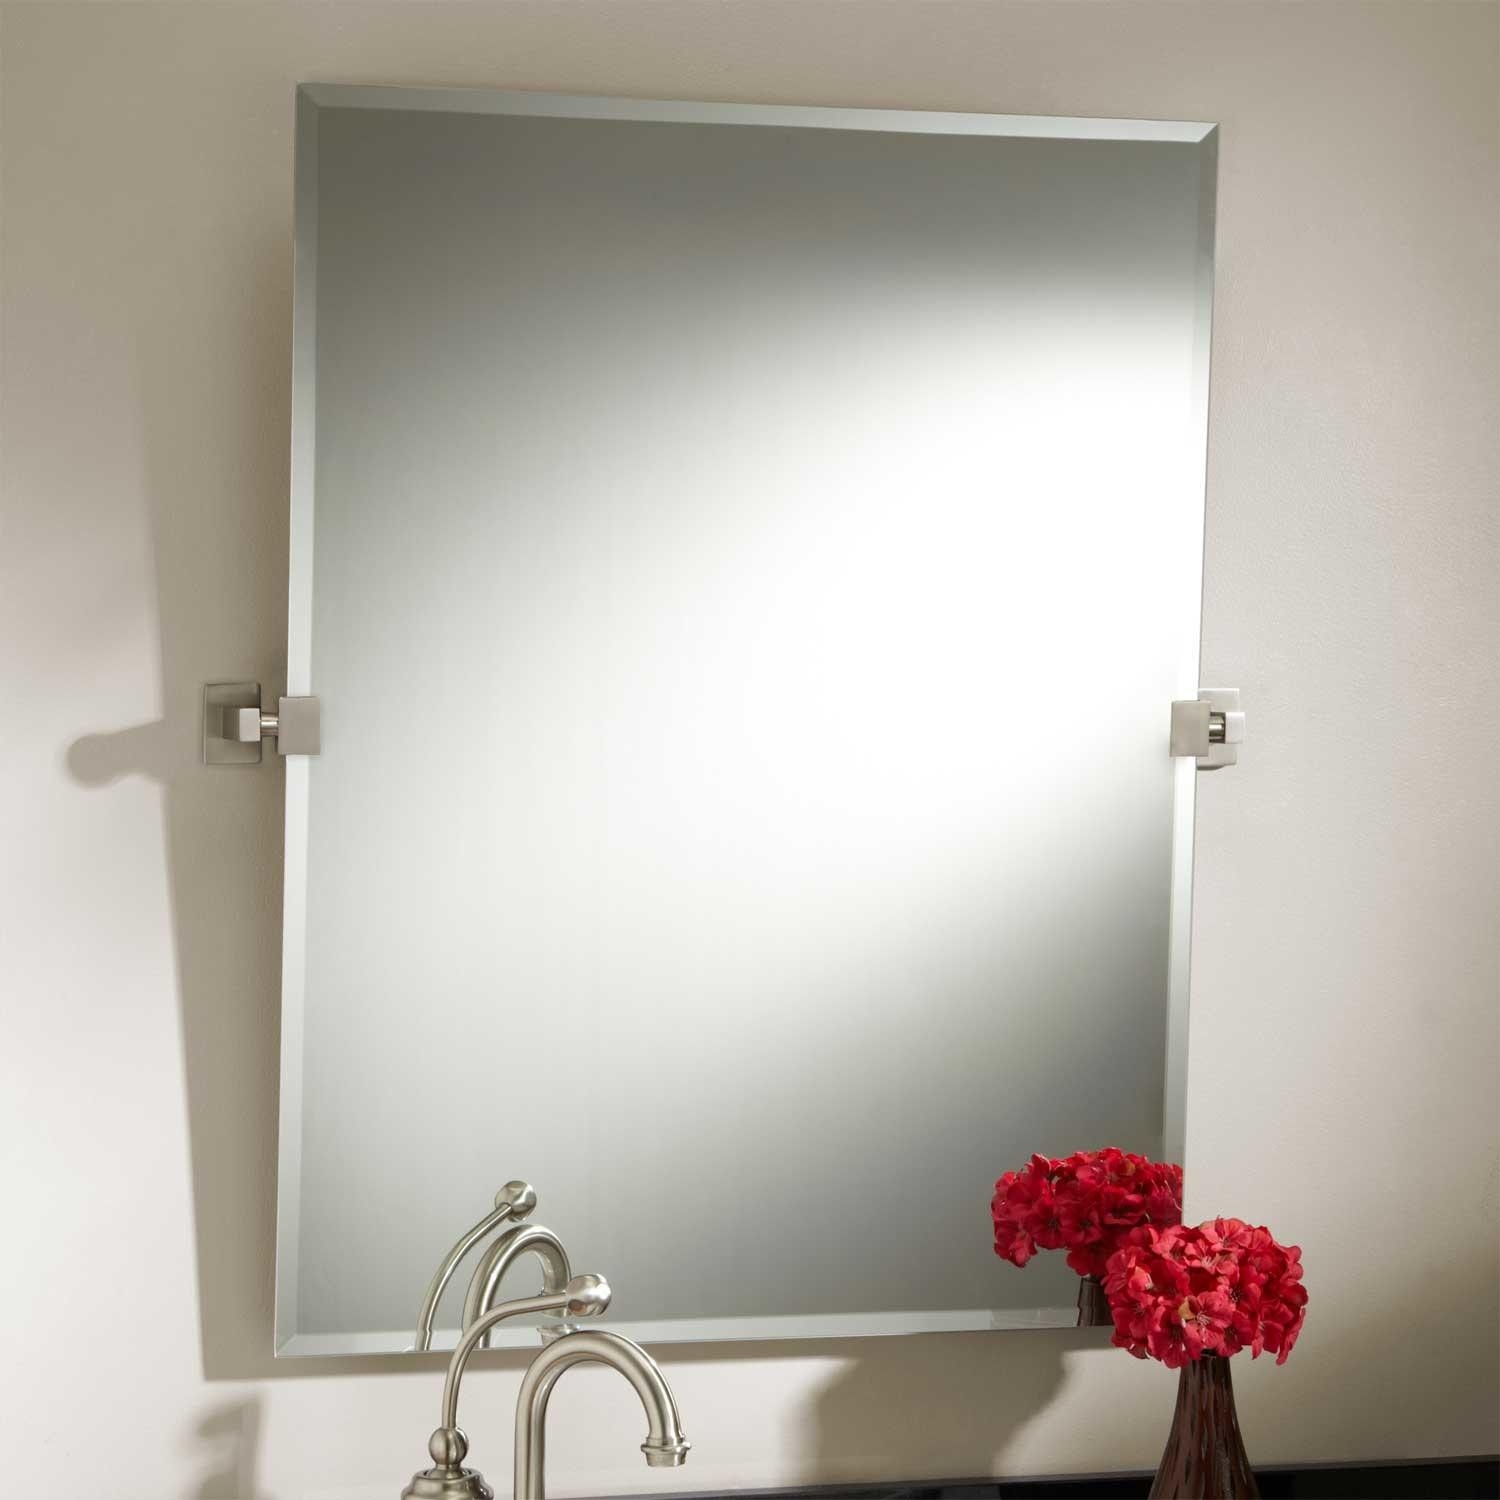 Bathroom Wall Tilt Mirrors